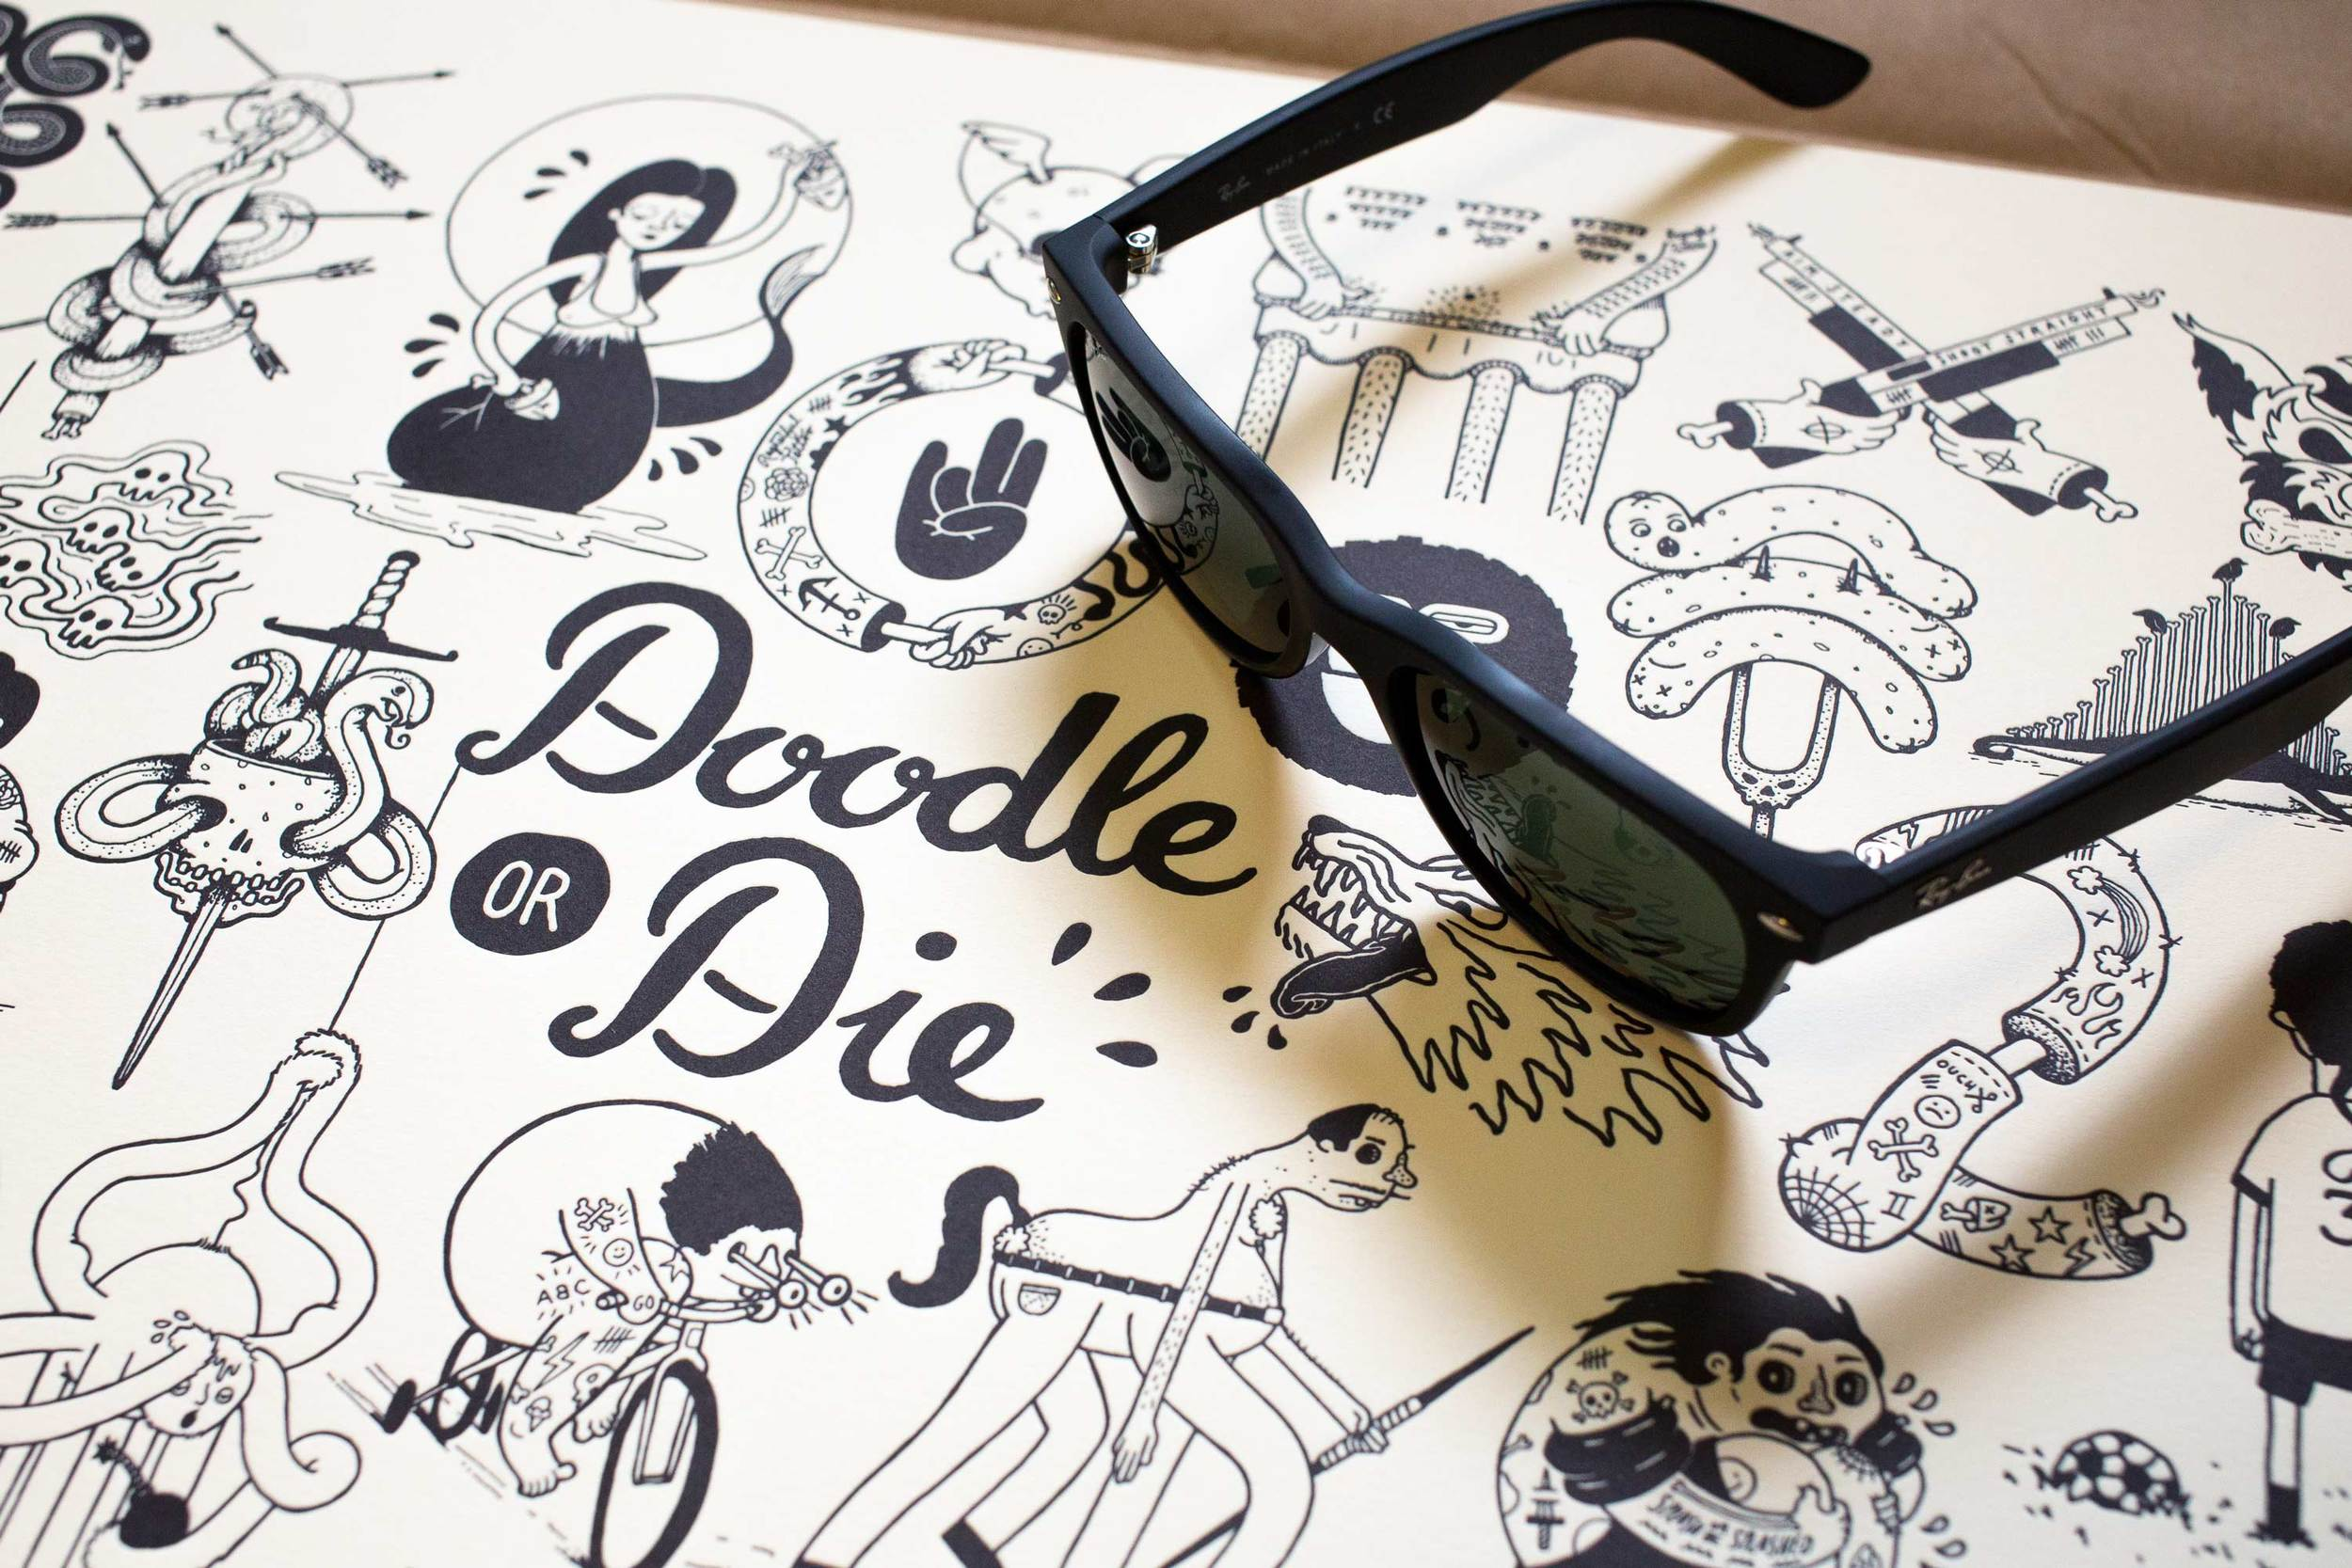 DOD-Closeup-Sunglasses.jpg